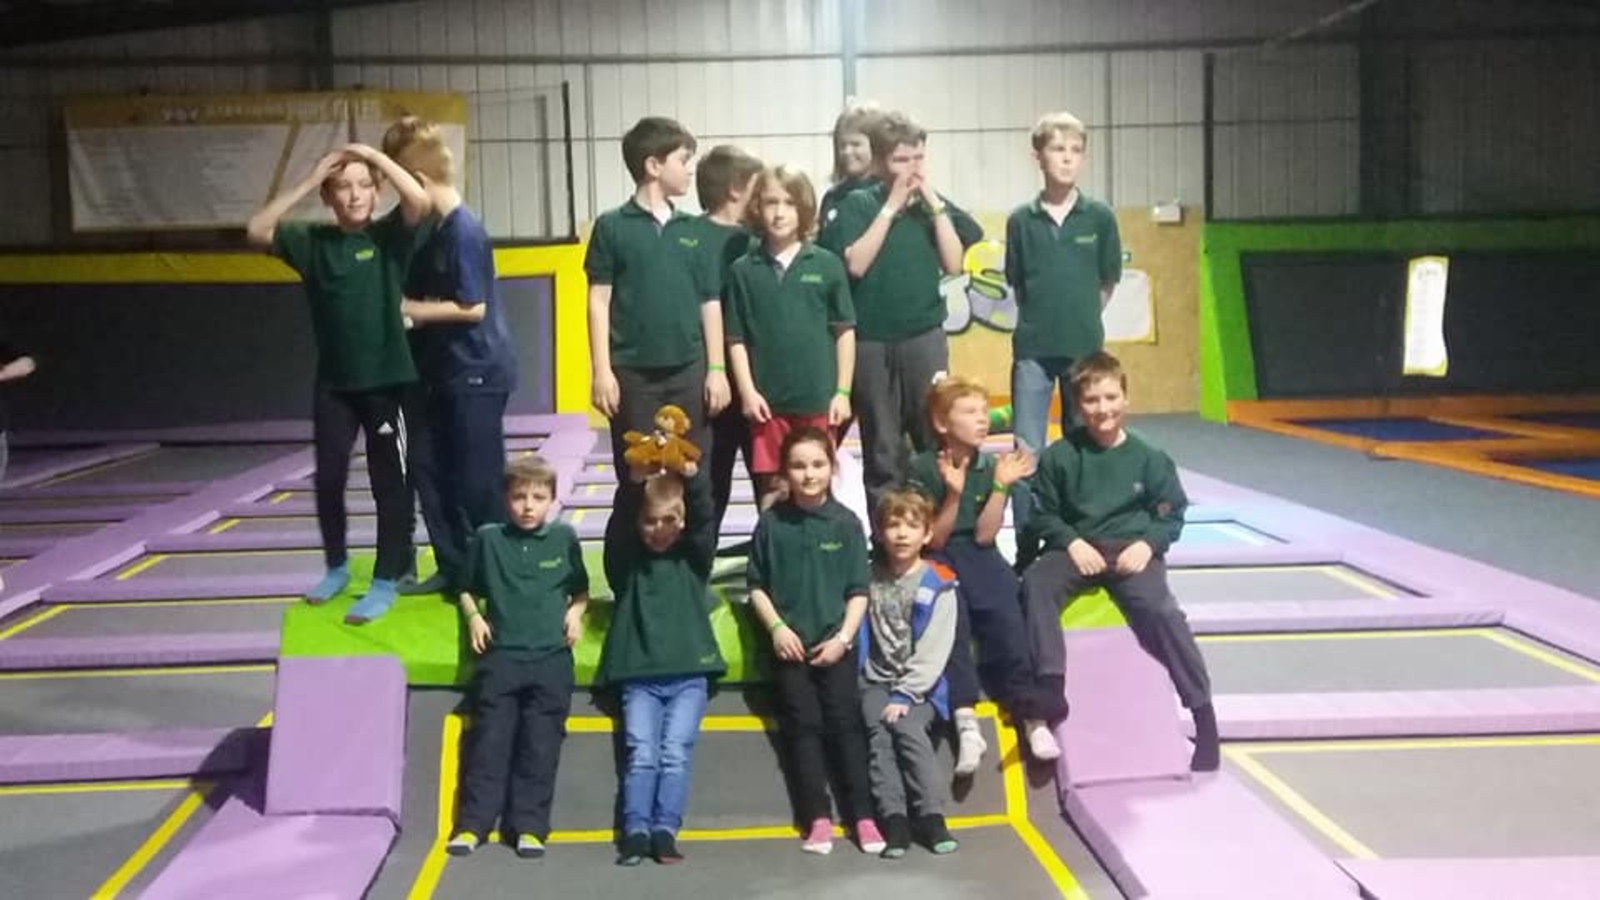 A Visit to the Trampoline Park